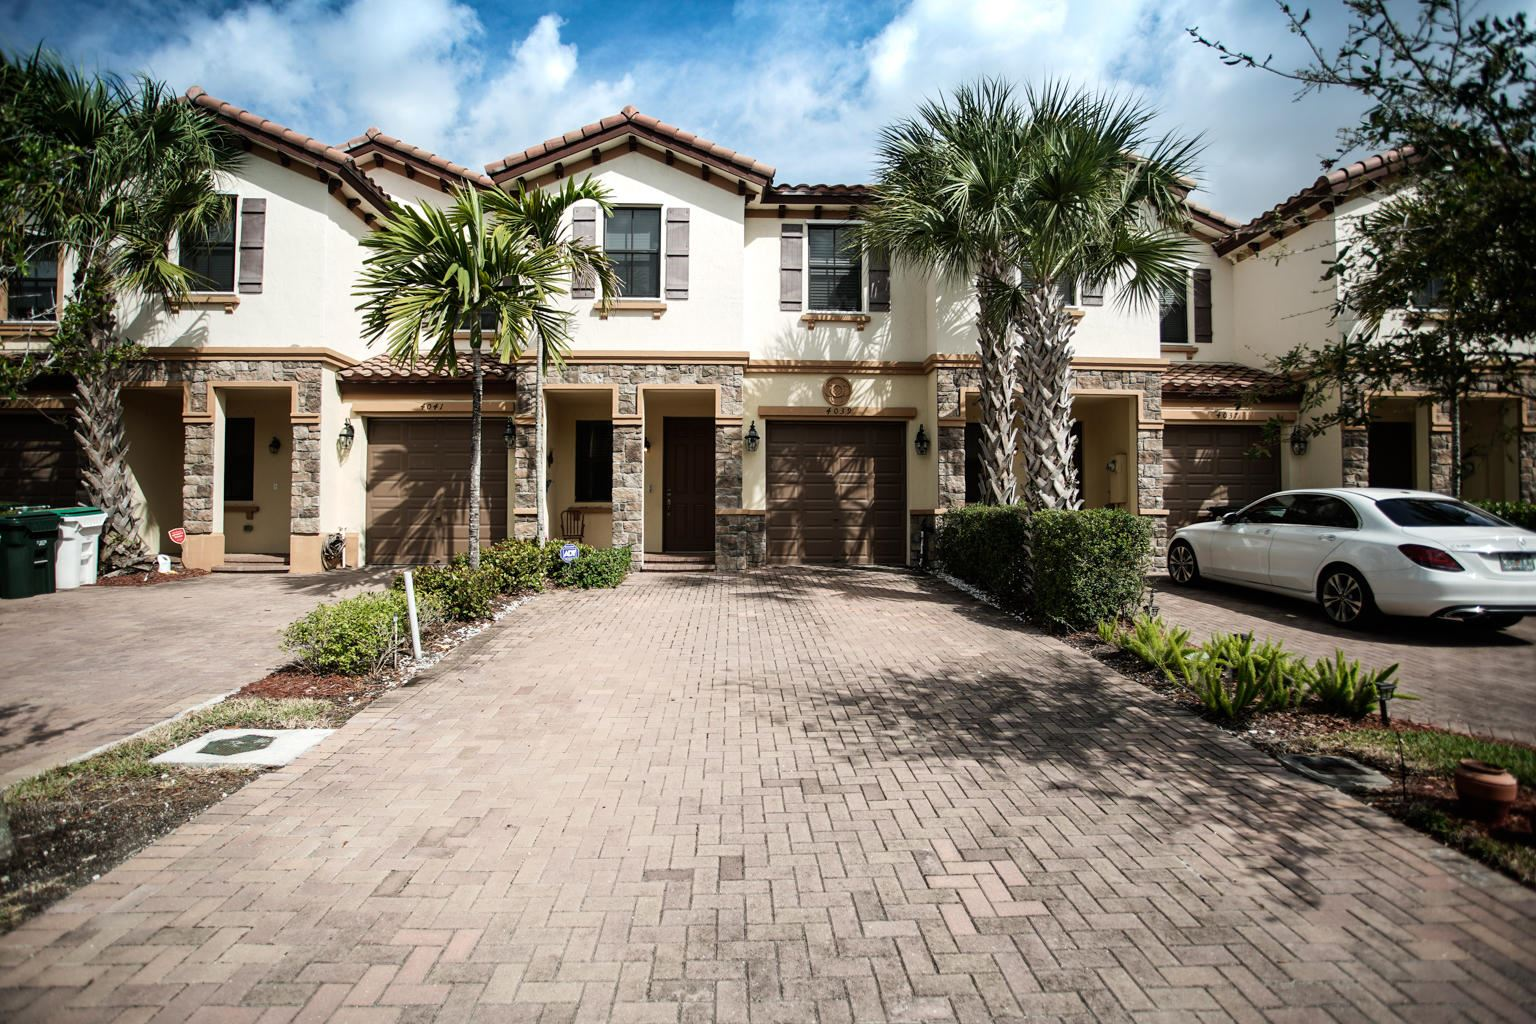 4039 Devenshire Court, Coconut Creek, FL 33073 - #: RX-10607214